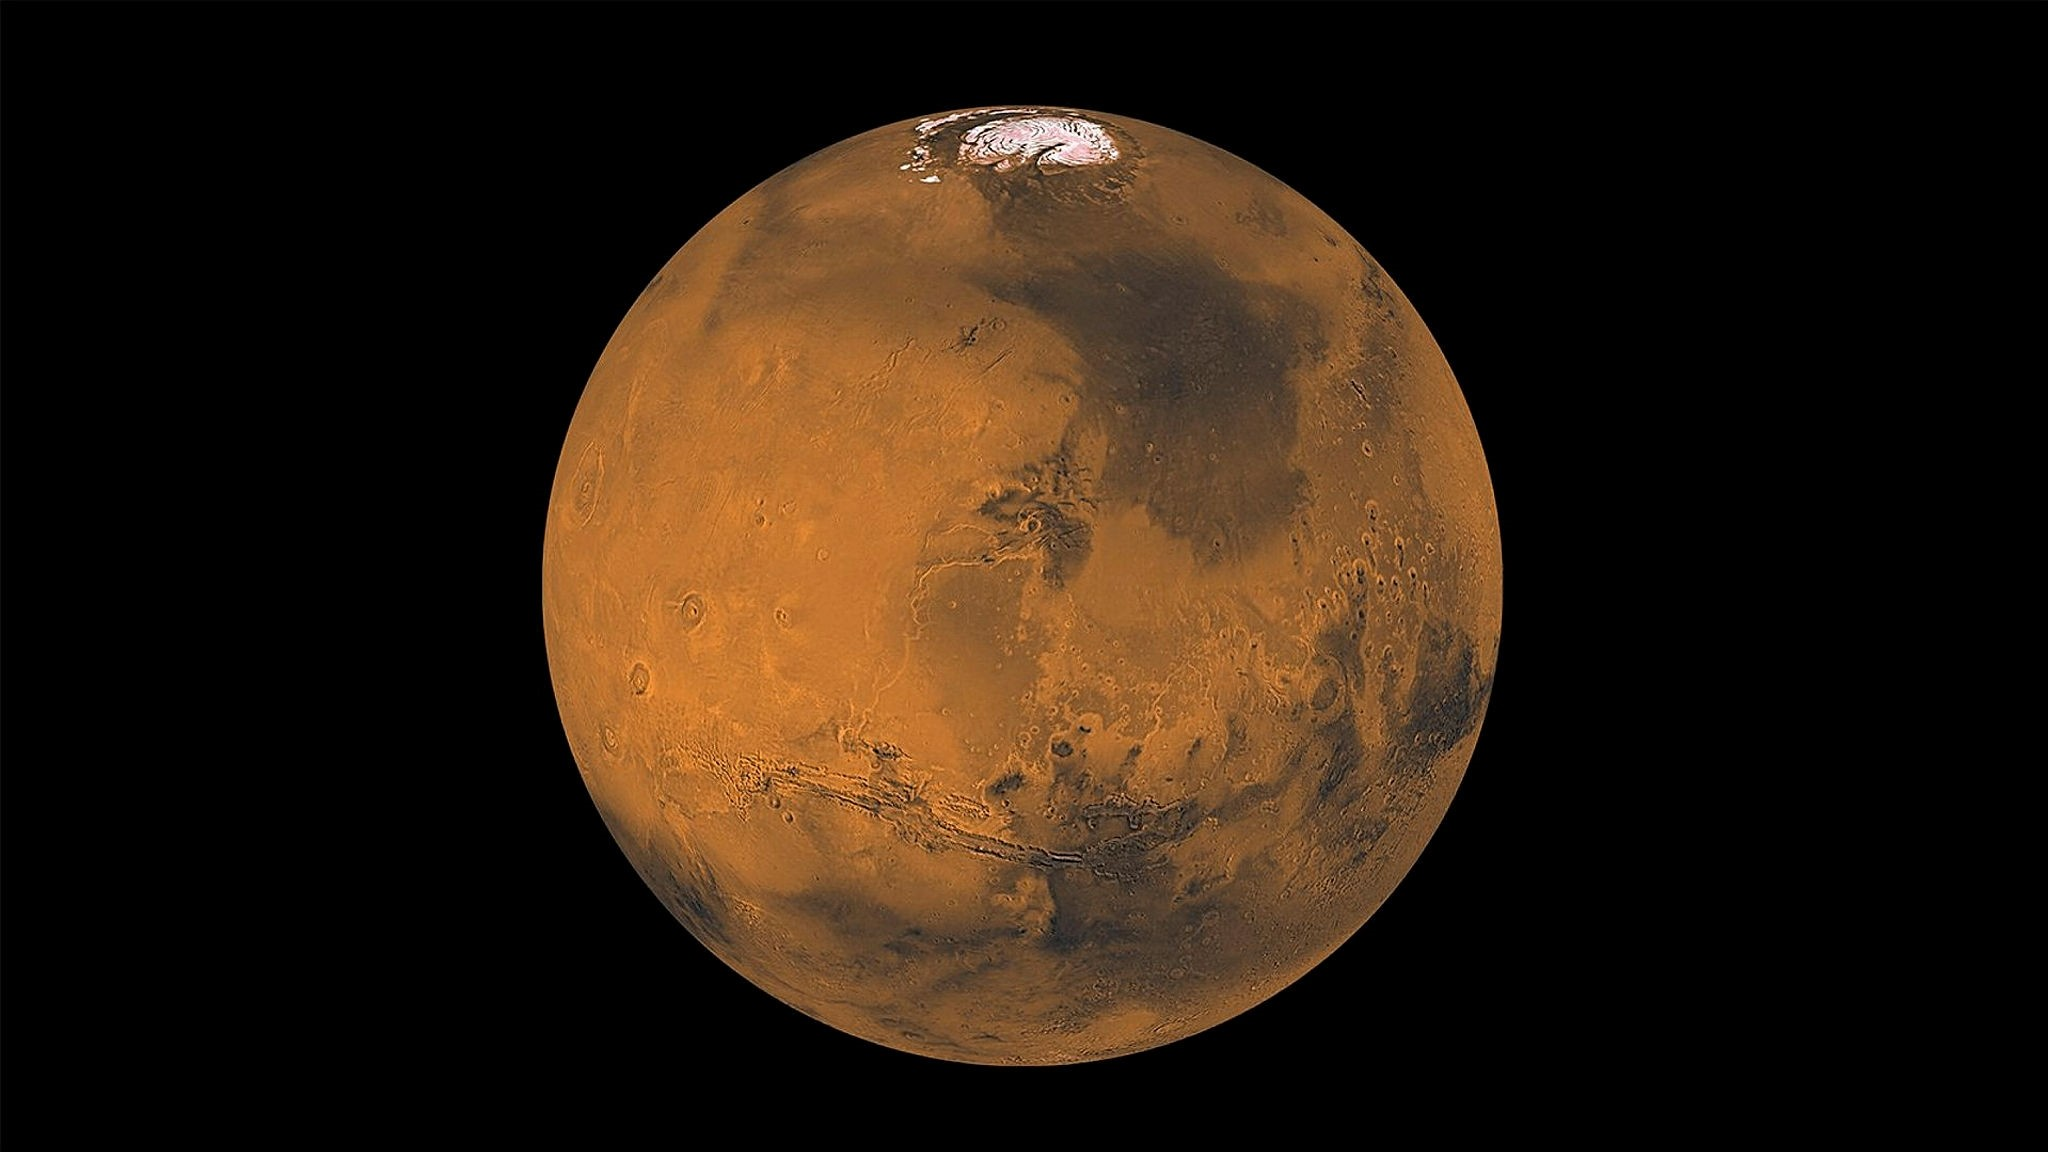 The 'Red Planet' Mars